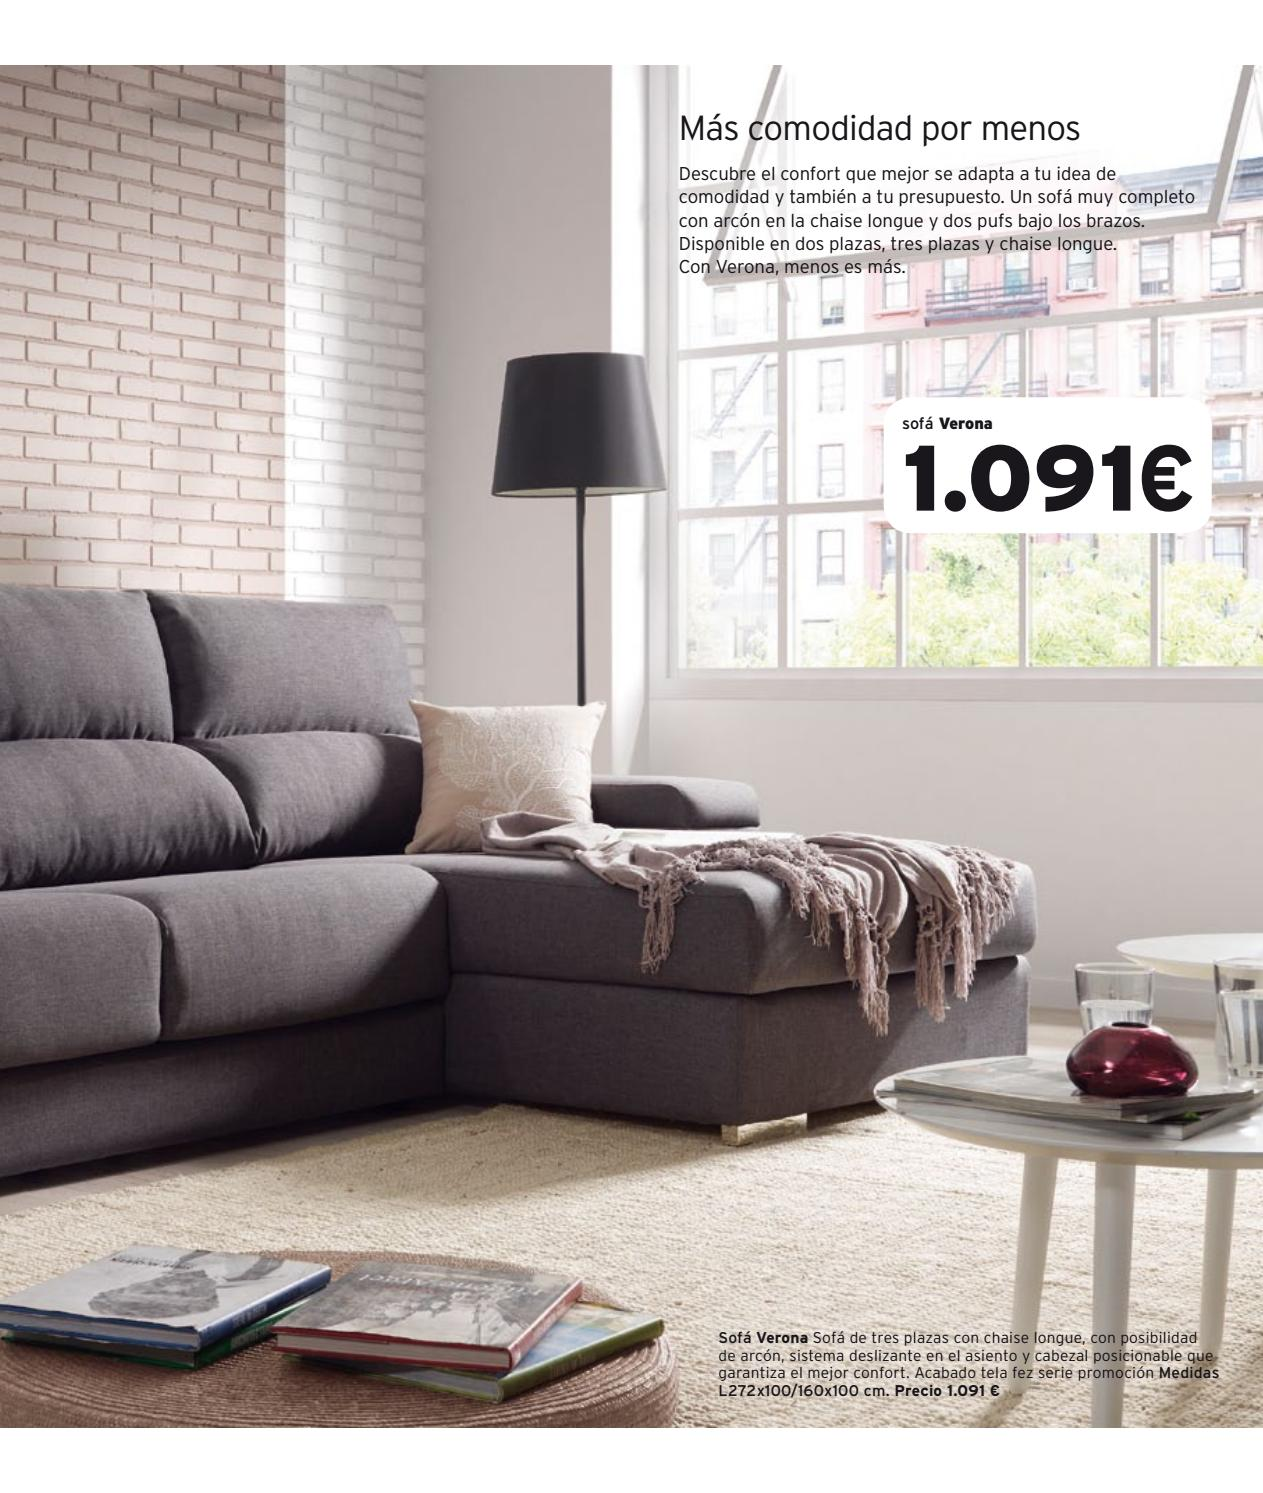 Que Es Arcon Sofa Kibuc Catalogo General 2016 17 By Kibuc Issuu